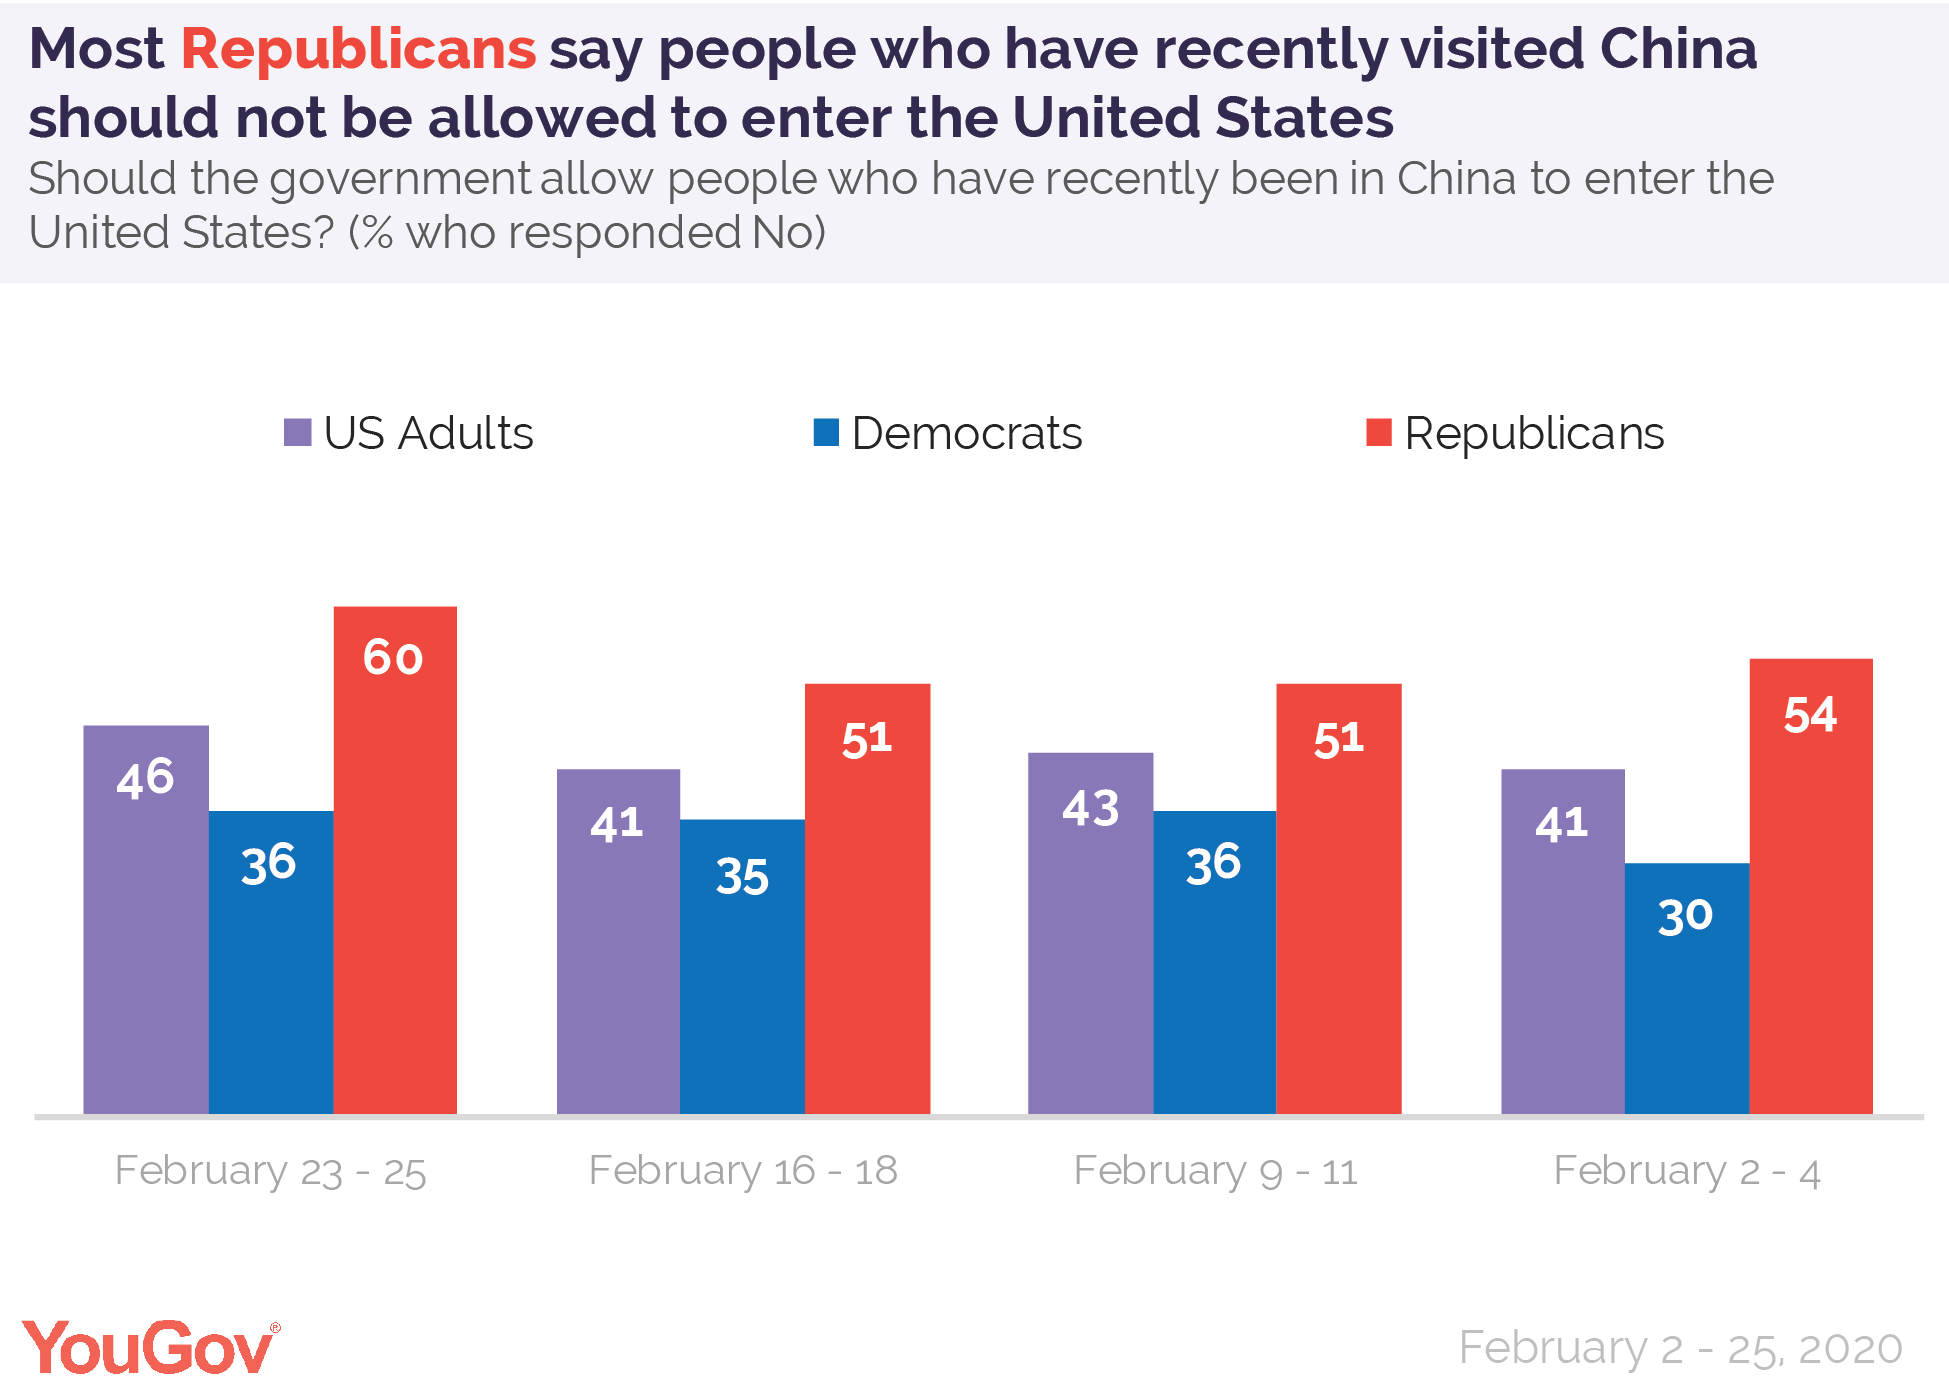 Most Republicans say people who have recently visited China should not be allowed to enter the United States